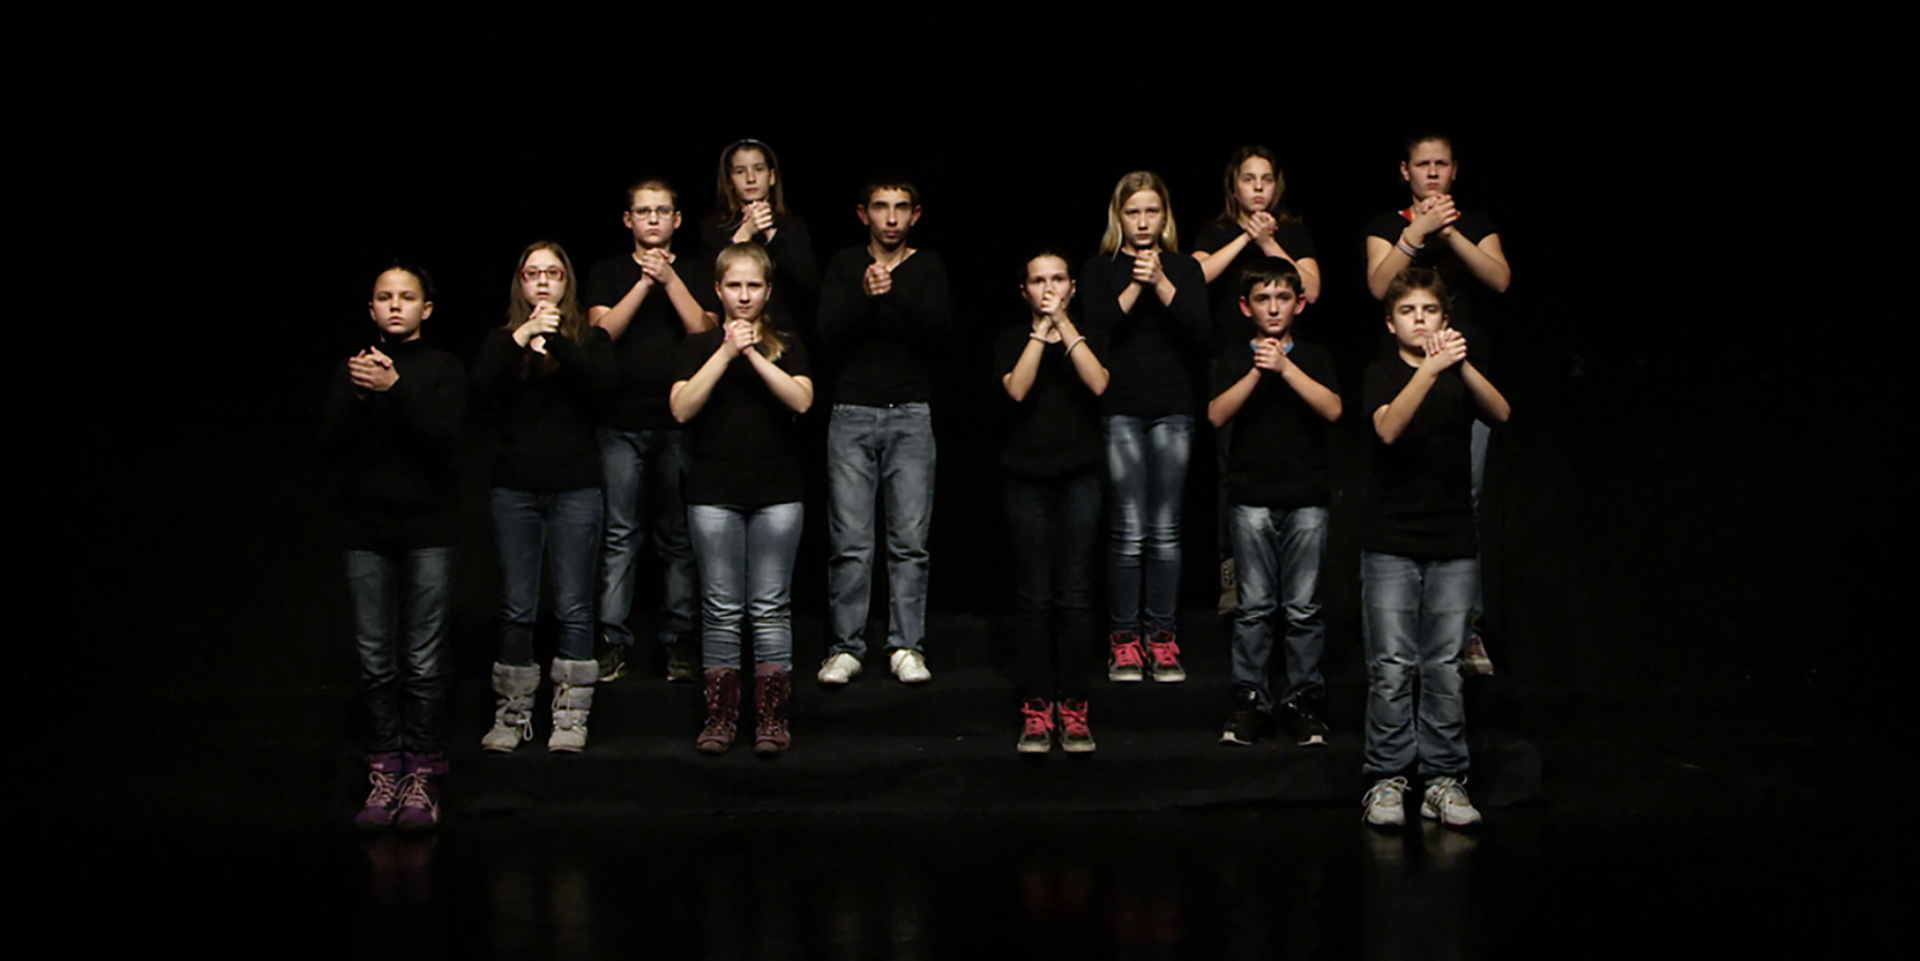 Ana Adamović, <i>Two Choirs</i>, 2013-14. Still from video. Courtesy of the artist